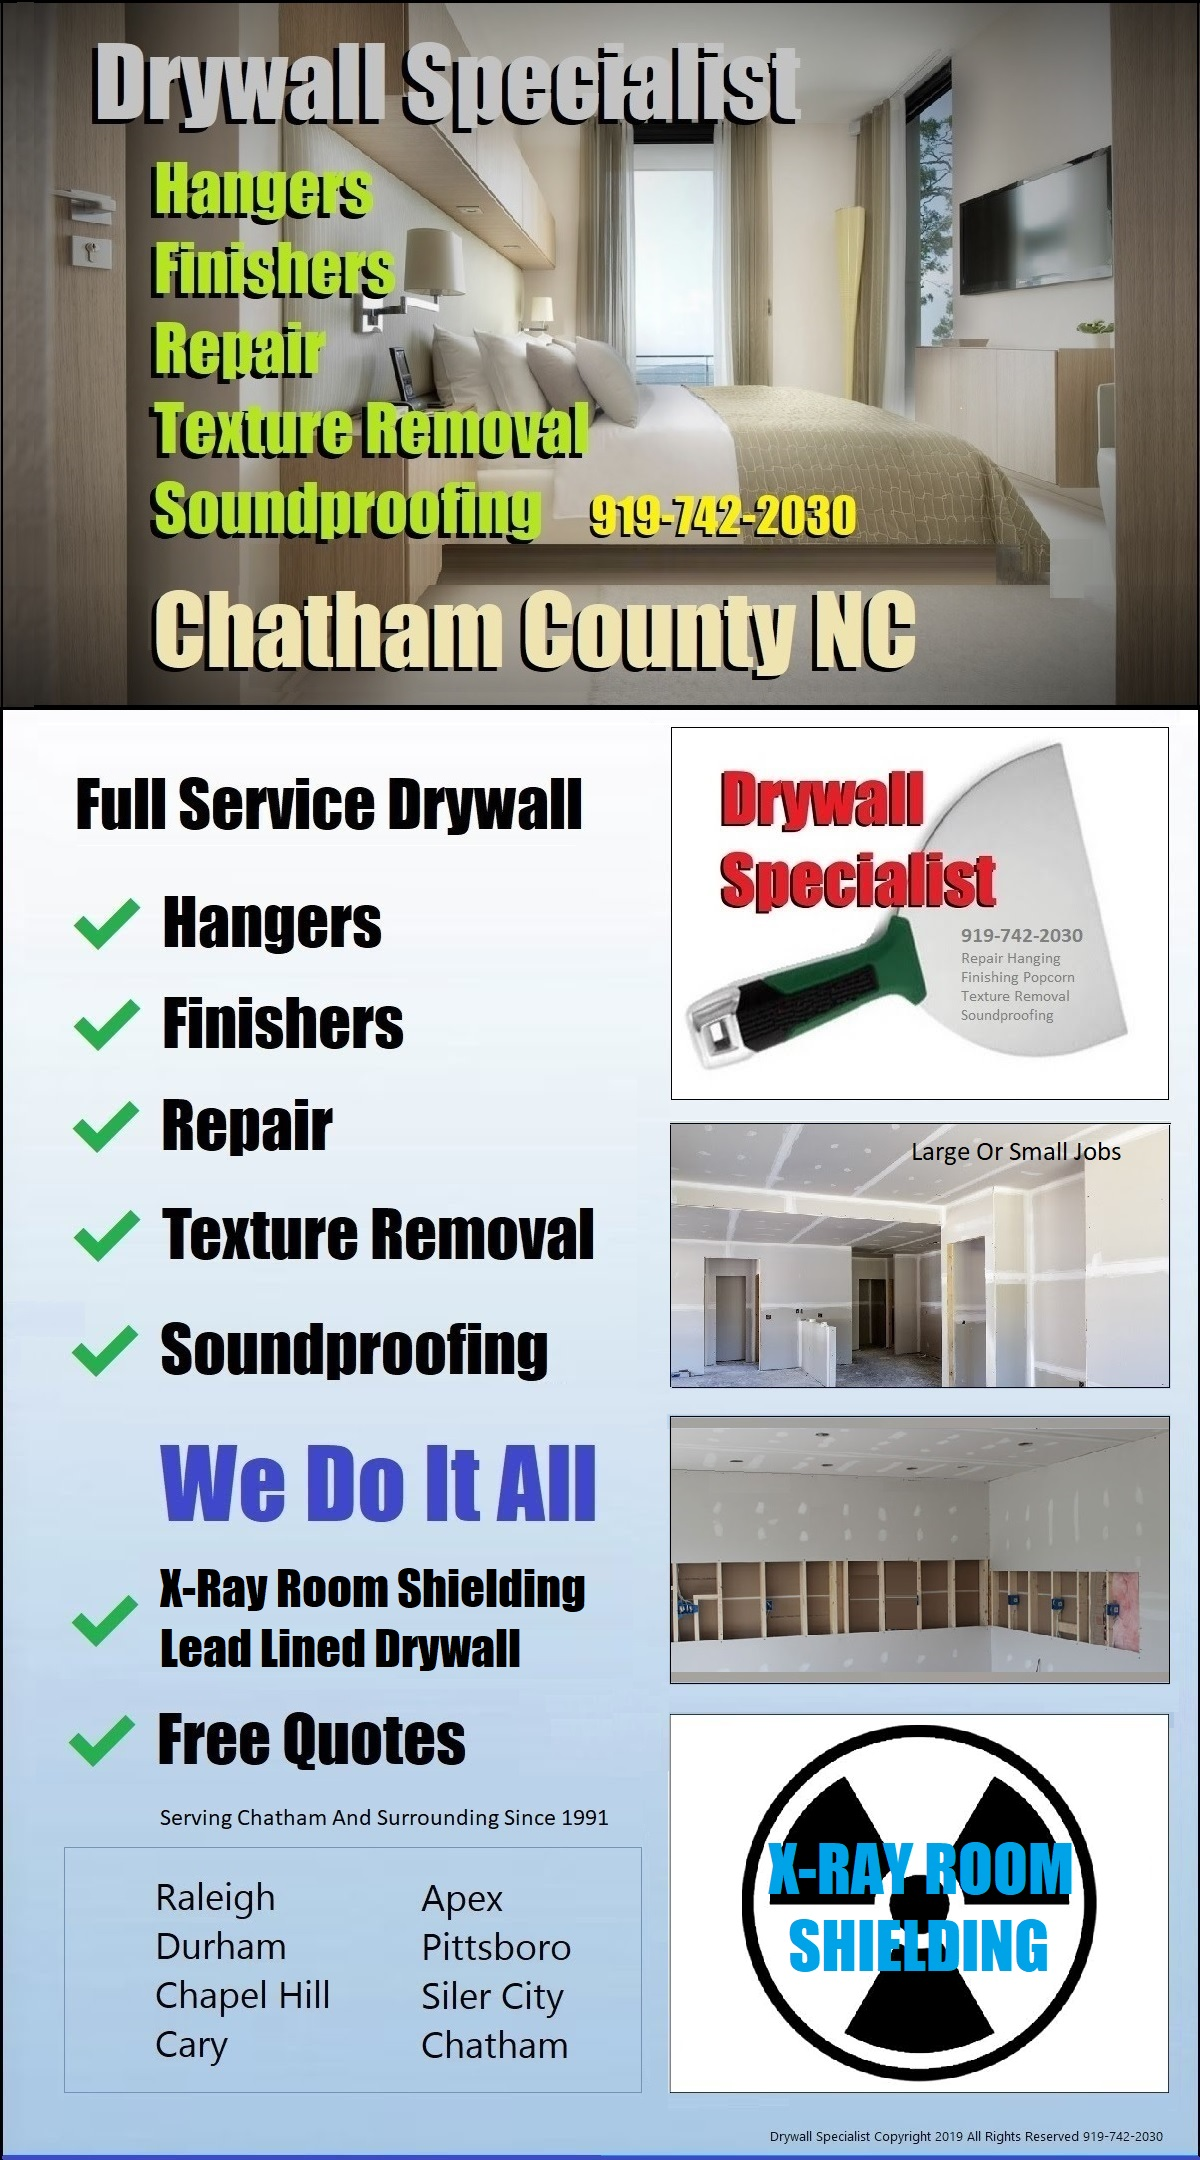 Nextdoor Wallboard Hanger Finisher Repair And Popcorn Texture Removal Soundproofing Companyr | North Carolina